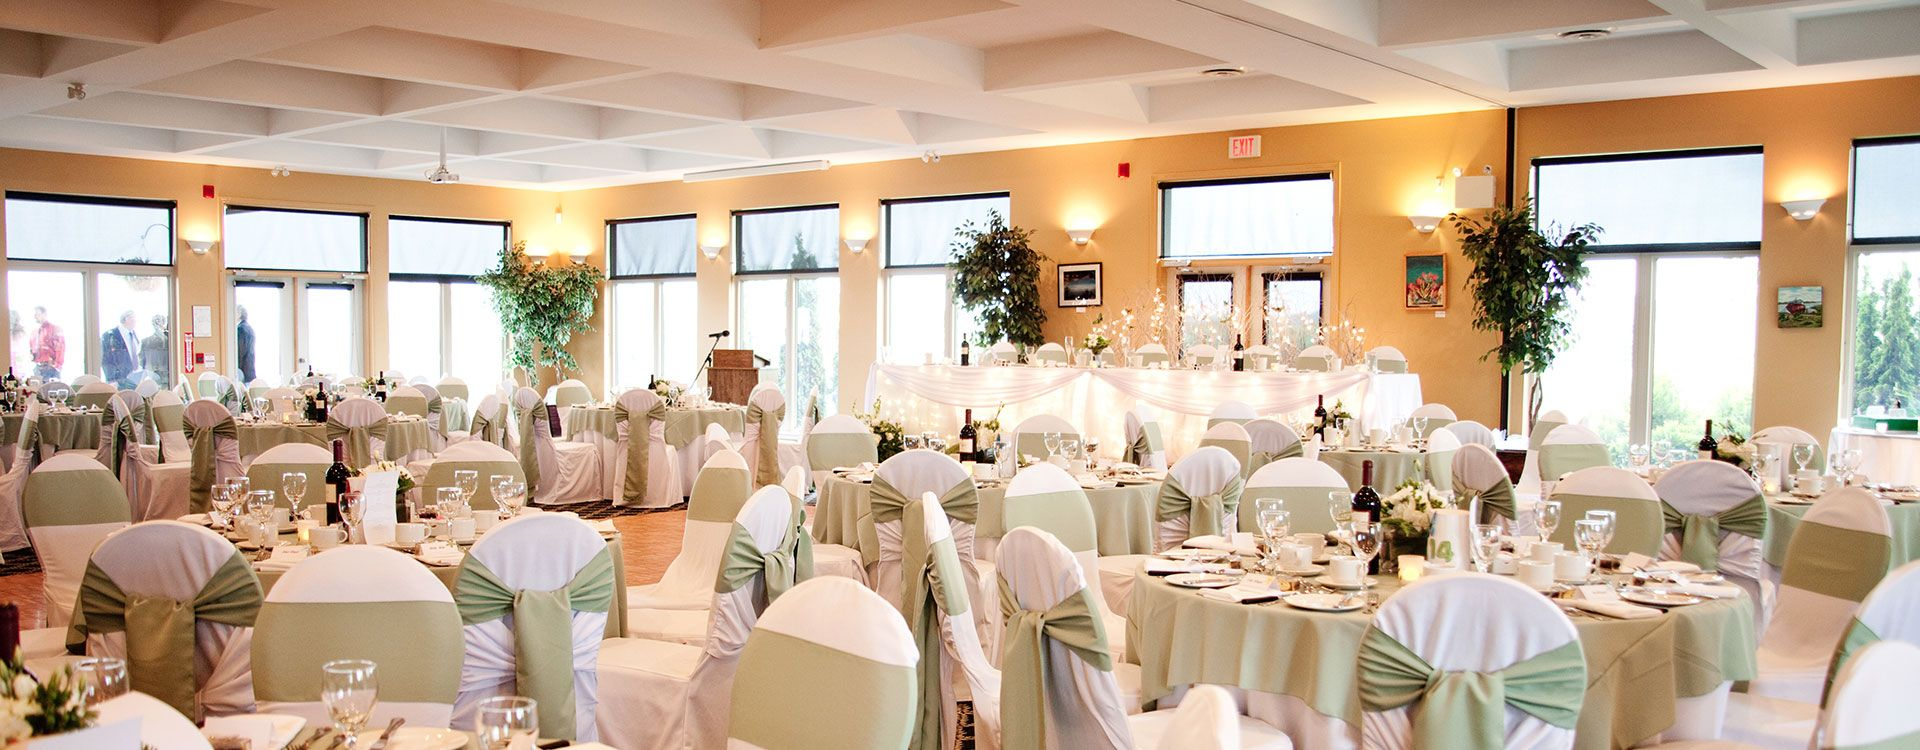 Get Married At Tangle Creek Golf Country In Barrie